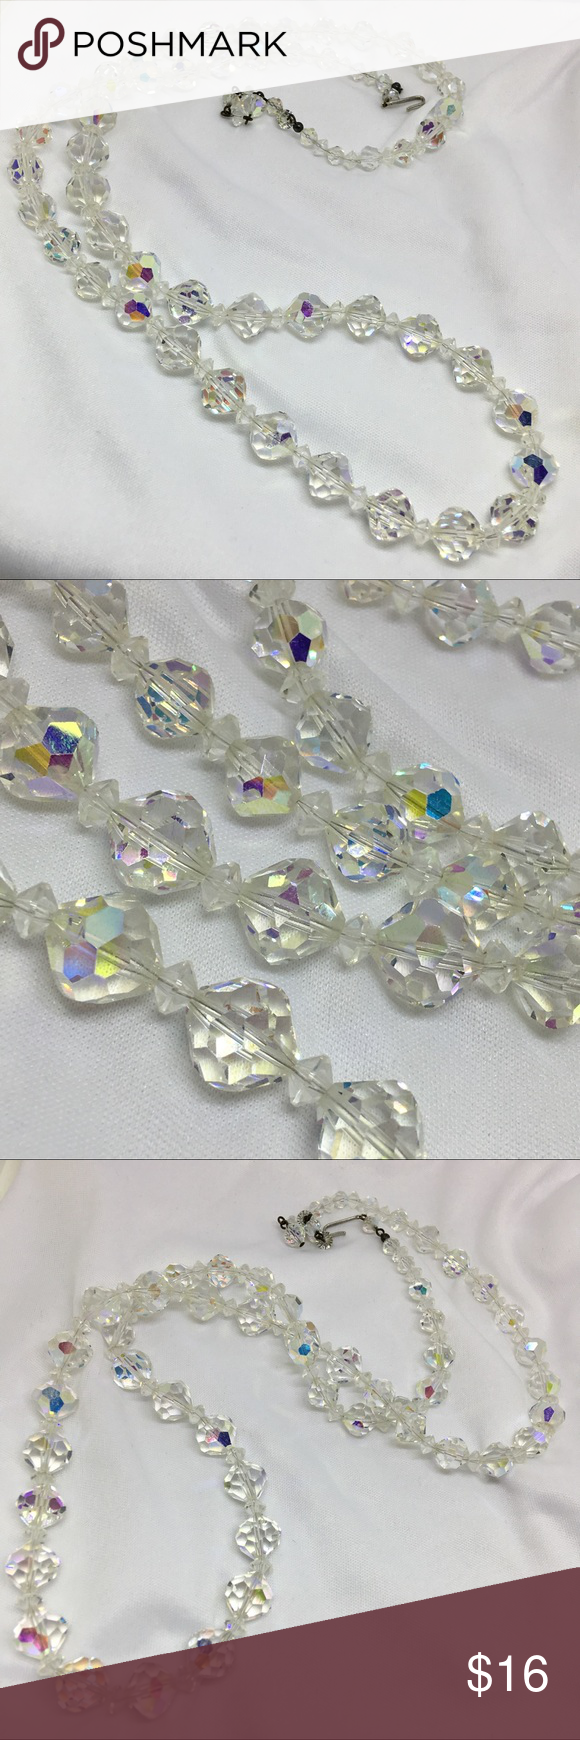 """🆕Vintage 32"""" Aurora Borealis Crystal Necklace This is an adjustable to 32"""" Aurora Borealis Crystal necklace, all crystals in amazing condition. Each is spaced with a smaller spacer crystal, and this necuklace is just a classic. Can be worn doubled because of the clasp. A long strand of crystal beauties! Vintage Jewelry Necklaces"""